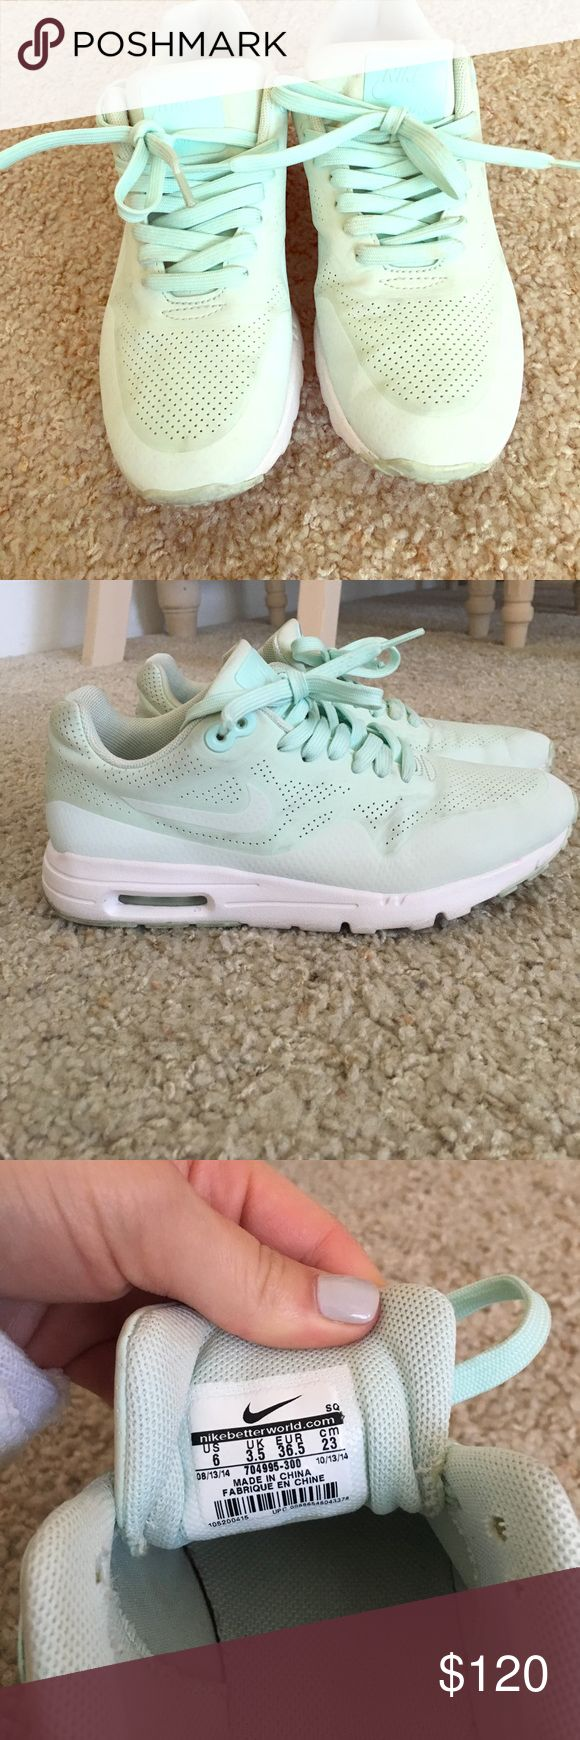 Rare Tiffany blue Nike air max size 6 Rare Tiffany blue Nike air max shoes size 6. Worn only a handful of times, look brand new! Nike Shoes Athletic Shoes